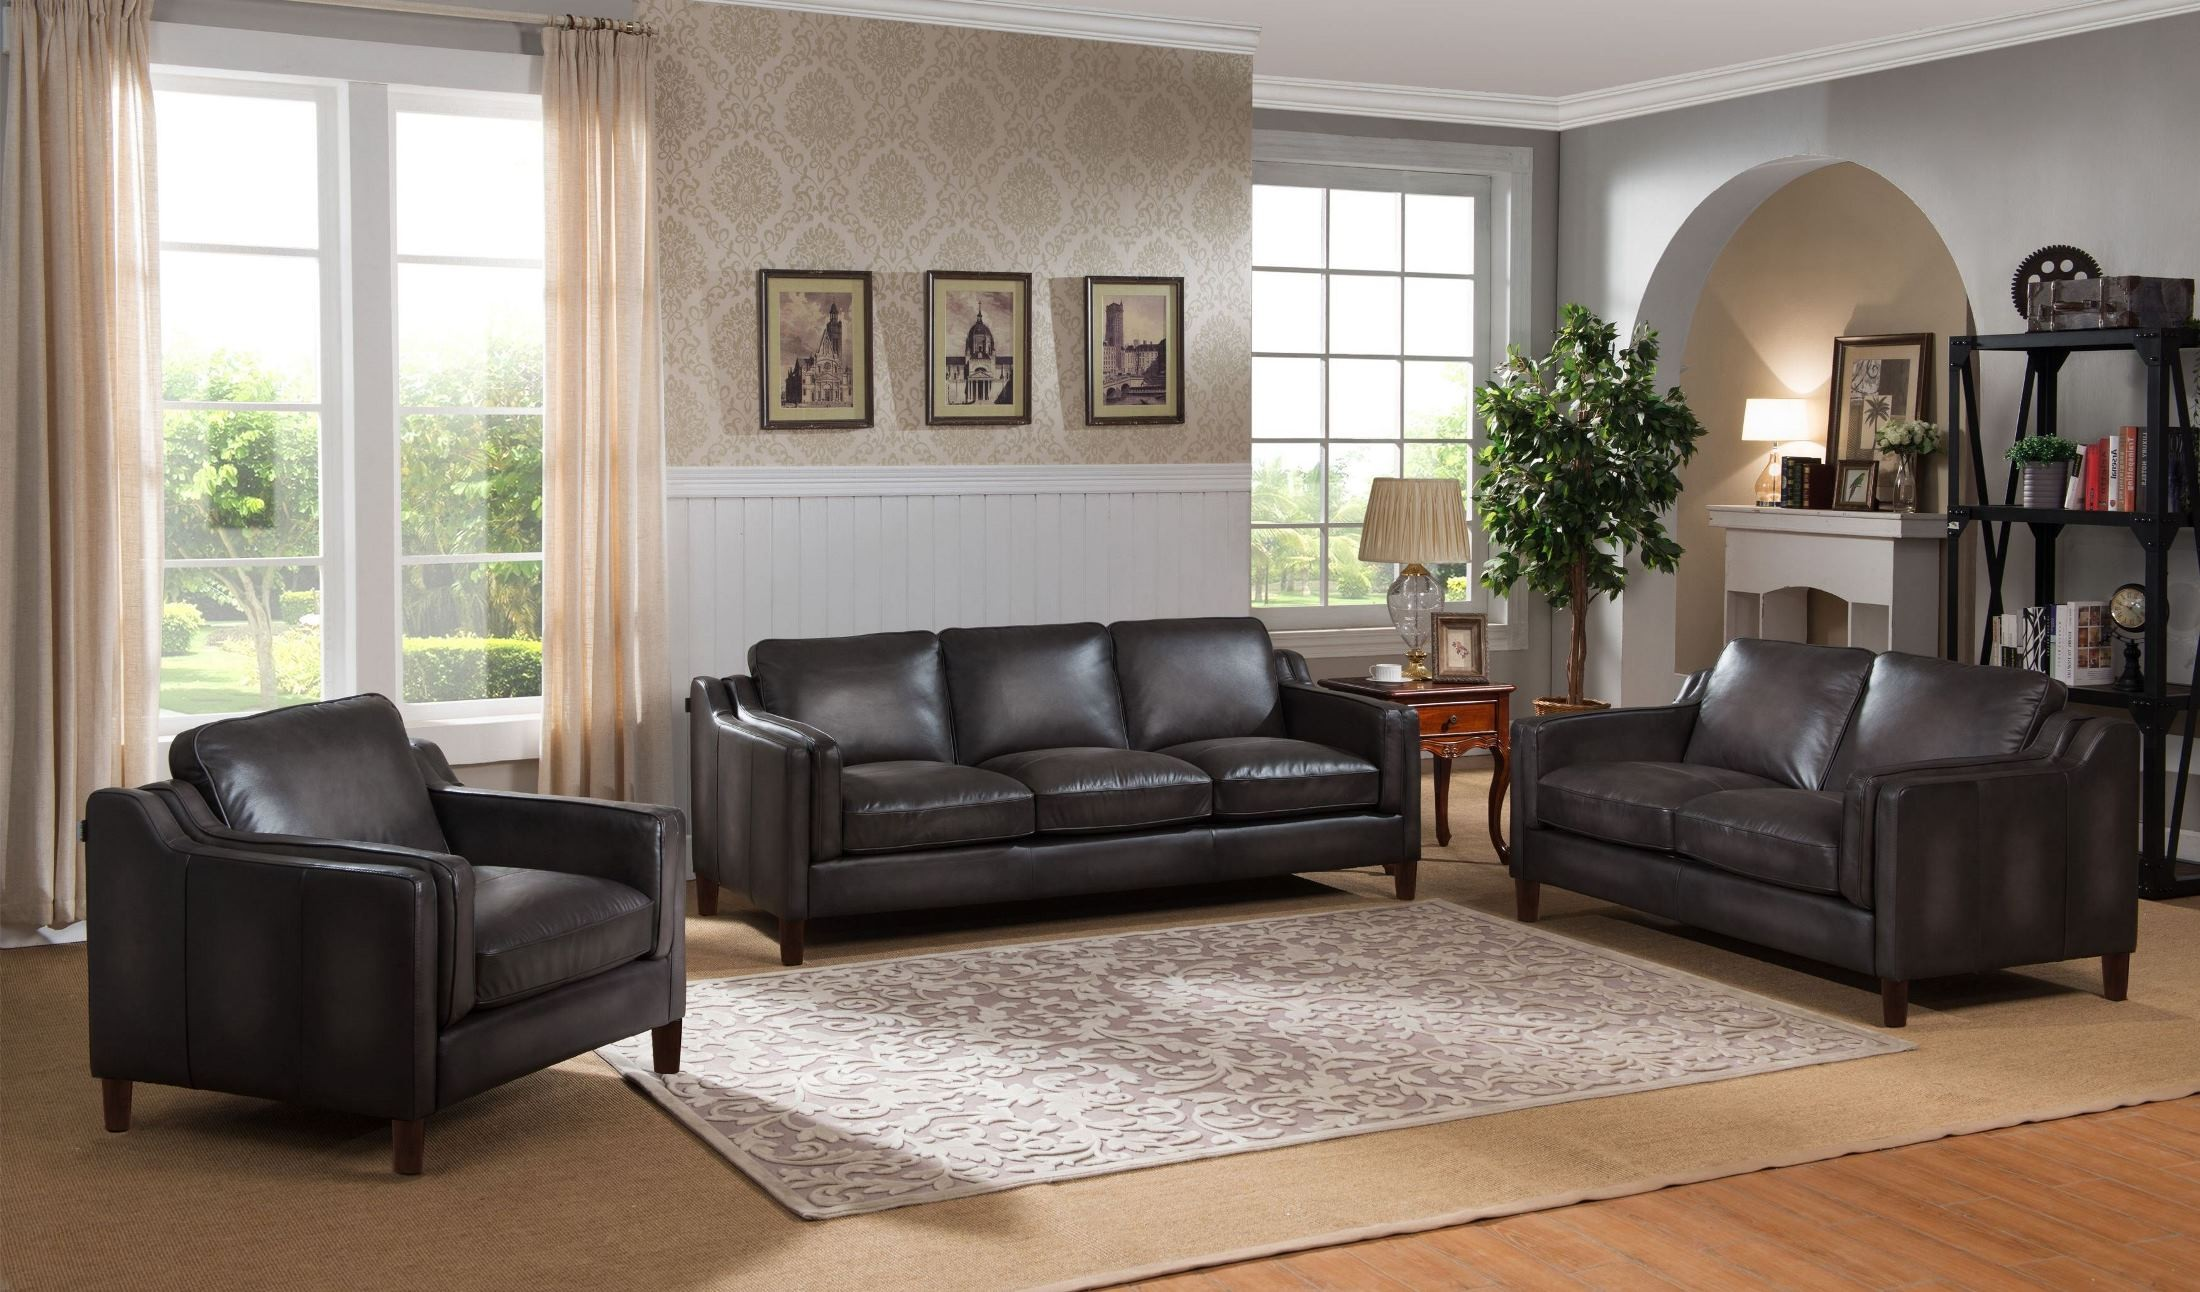 ballari weathered grey leather living room set c9822s2831ls amax